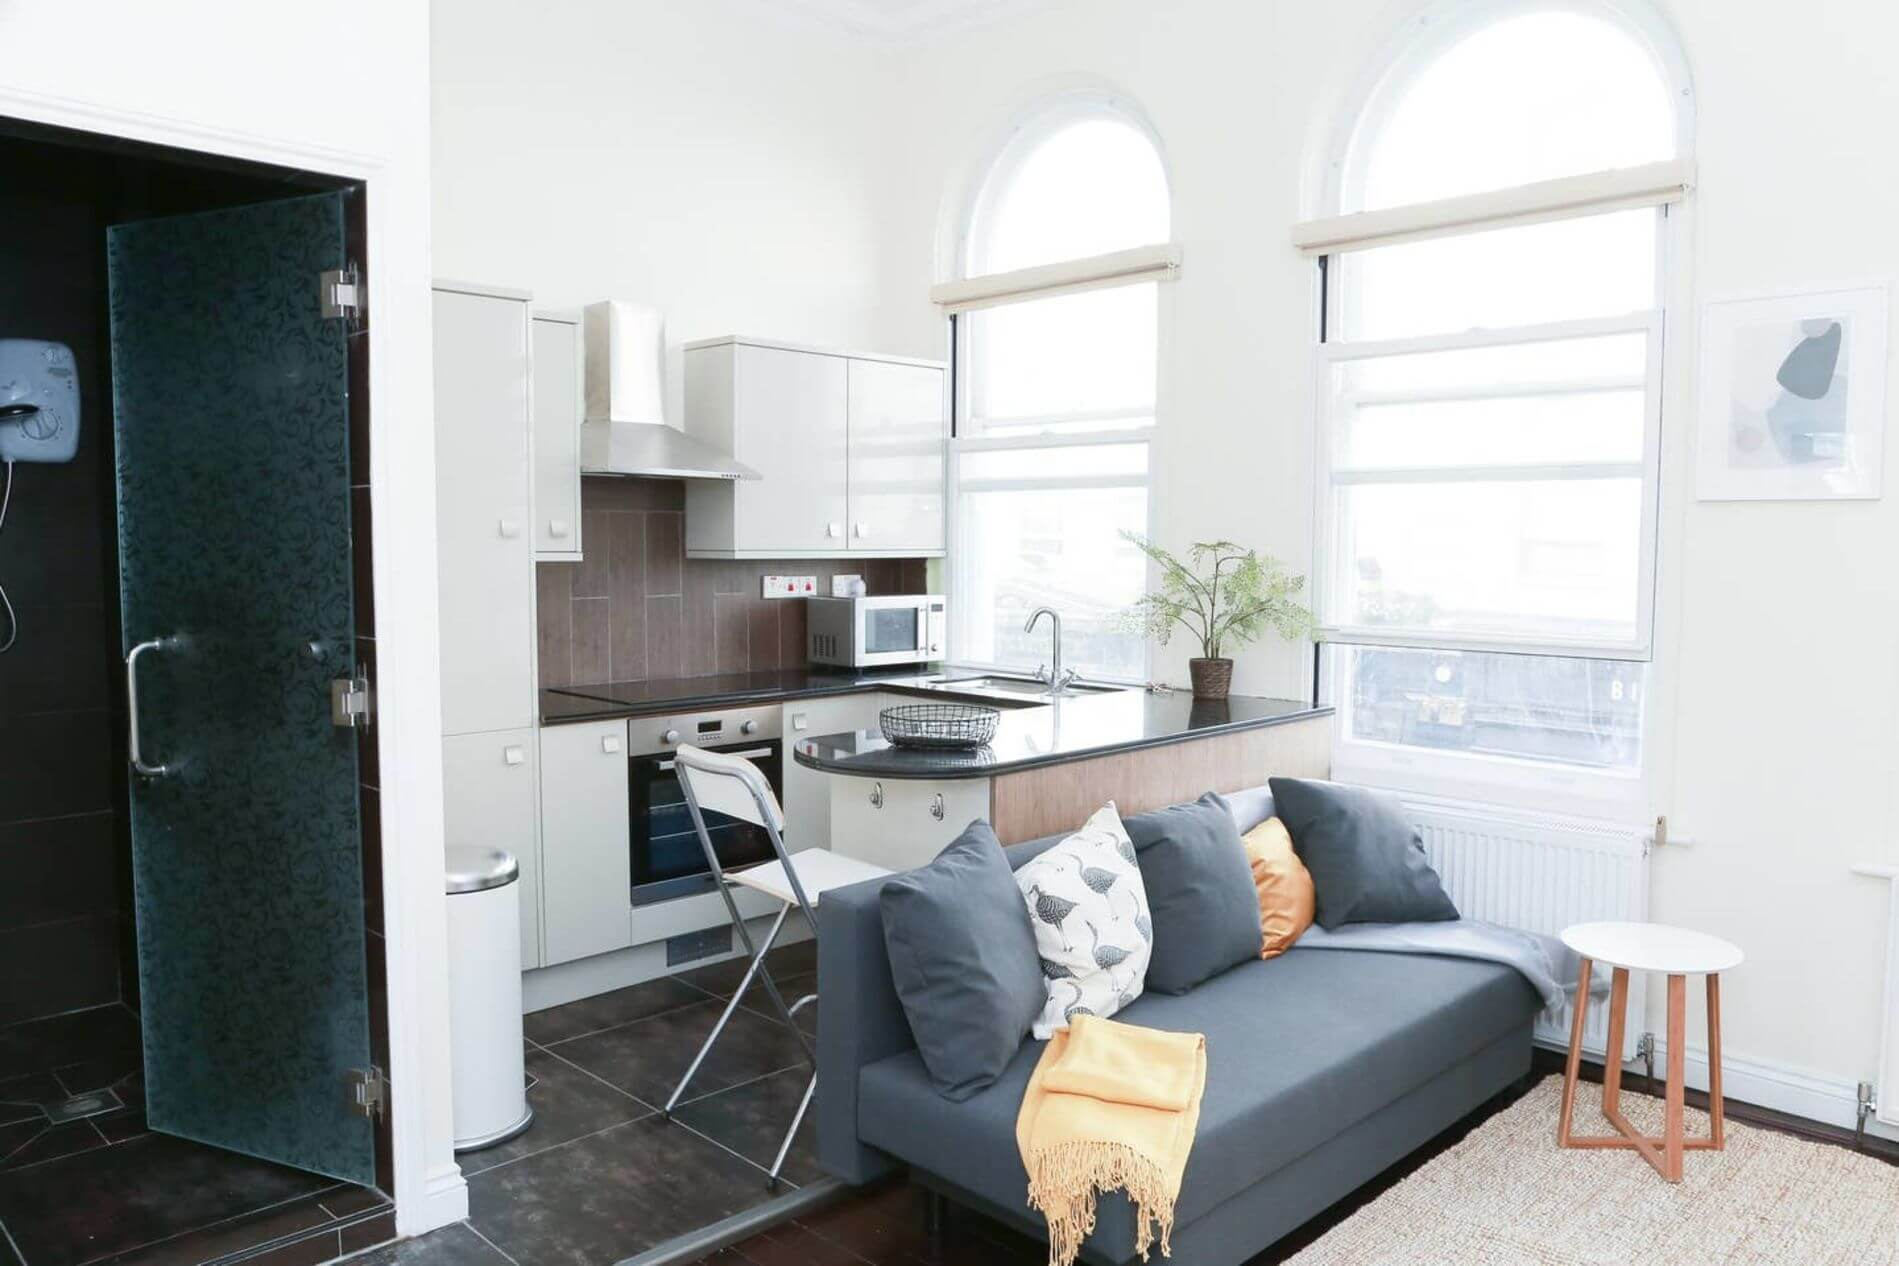 New furnished flat in London West End with instant booking option